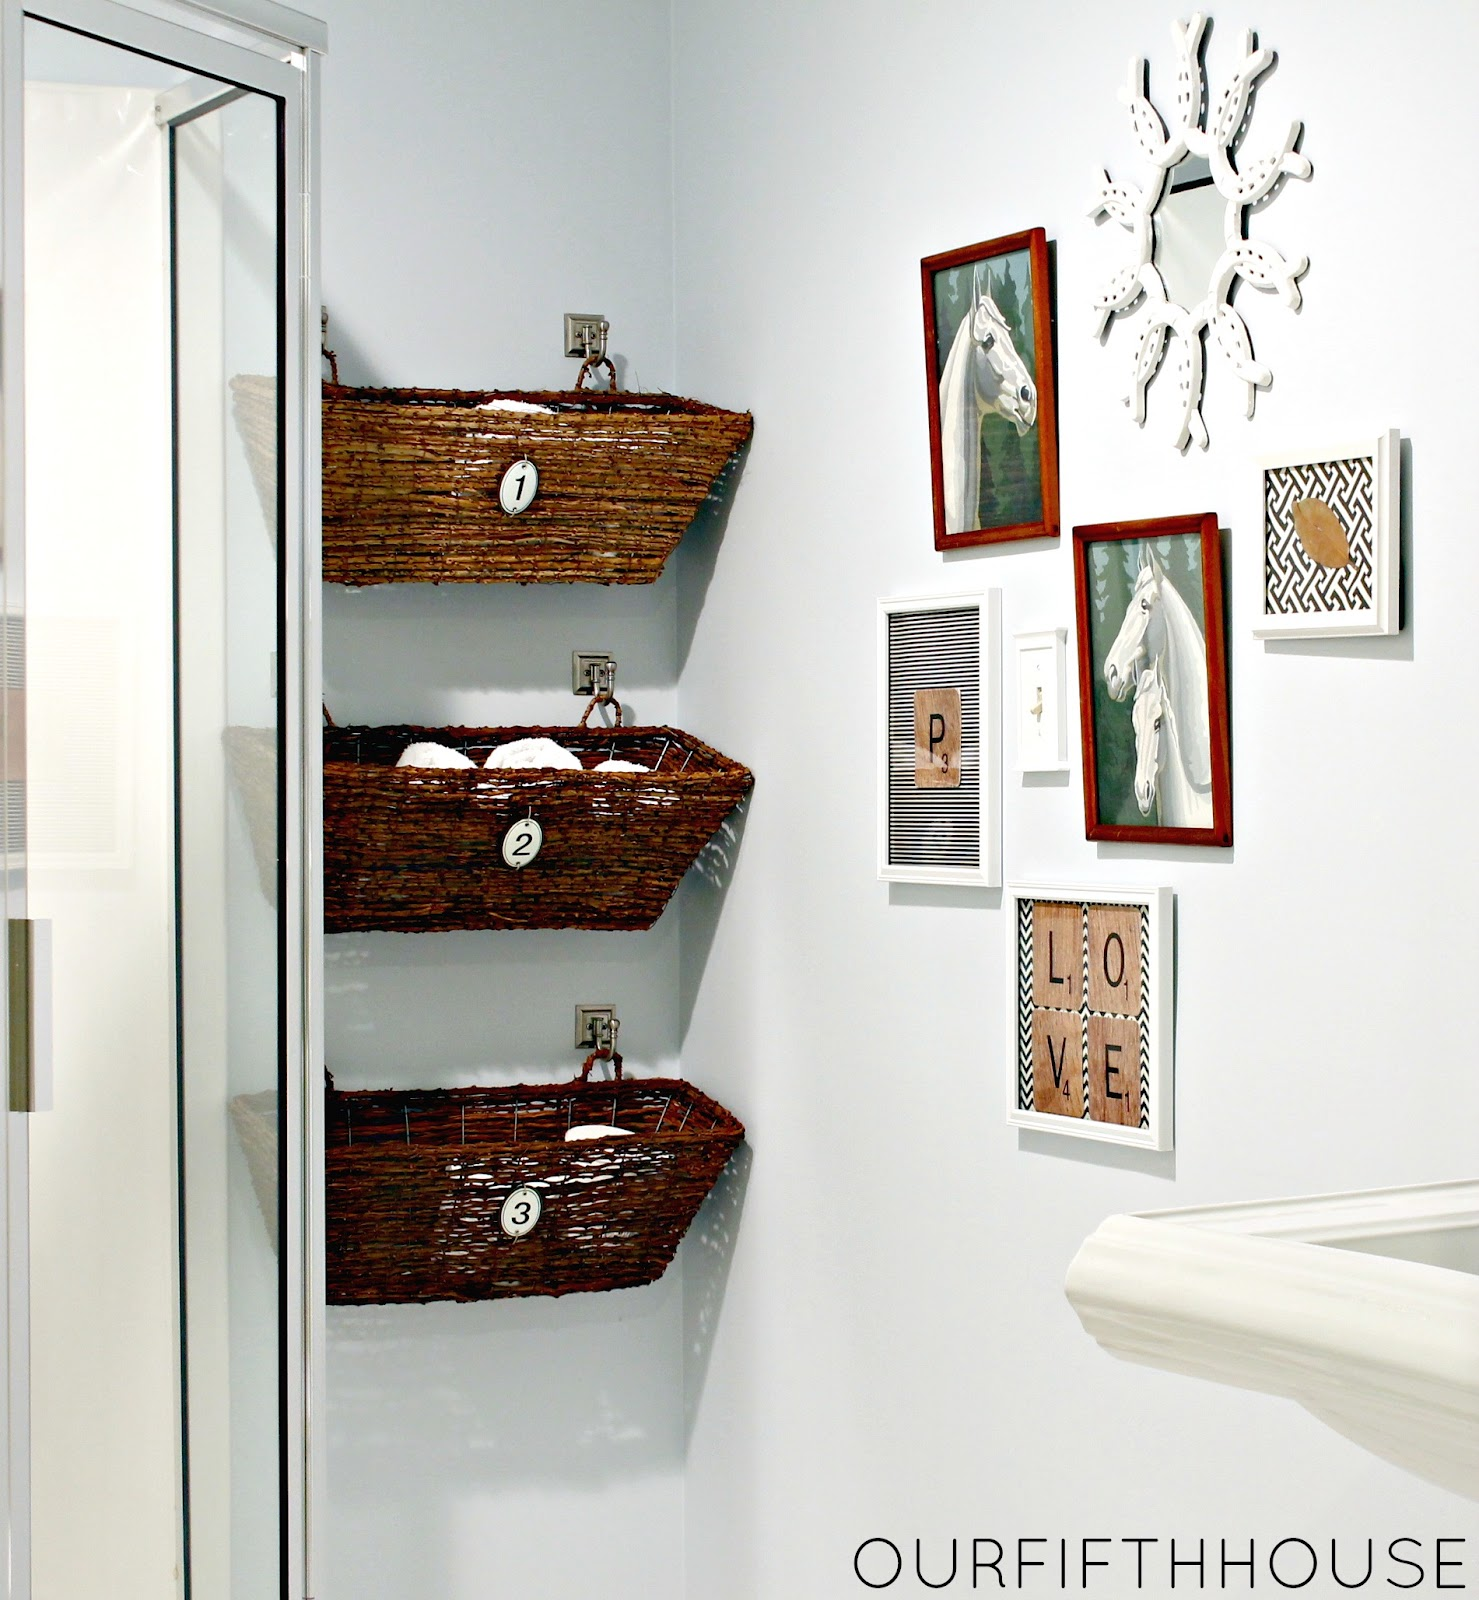 Diy bathroom storage ideas - 12 Small Bathroom Storage Ideas Wall Storage Solutons And Shelves For Bathrooms